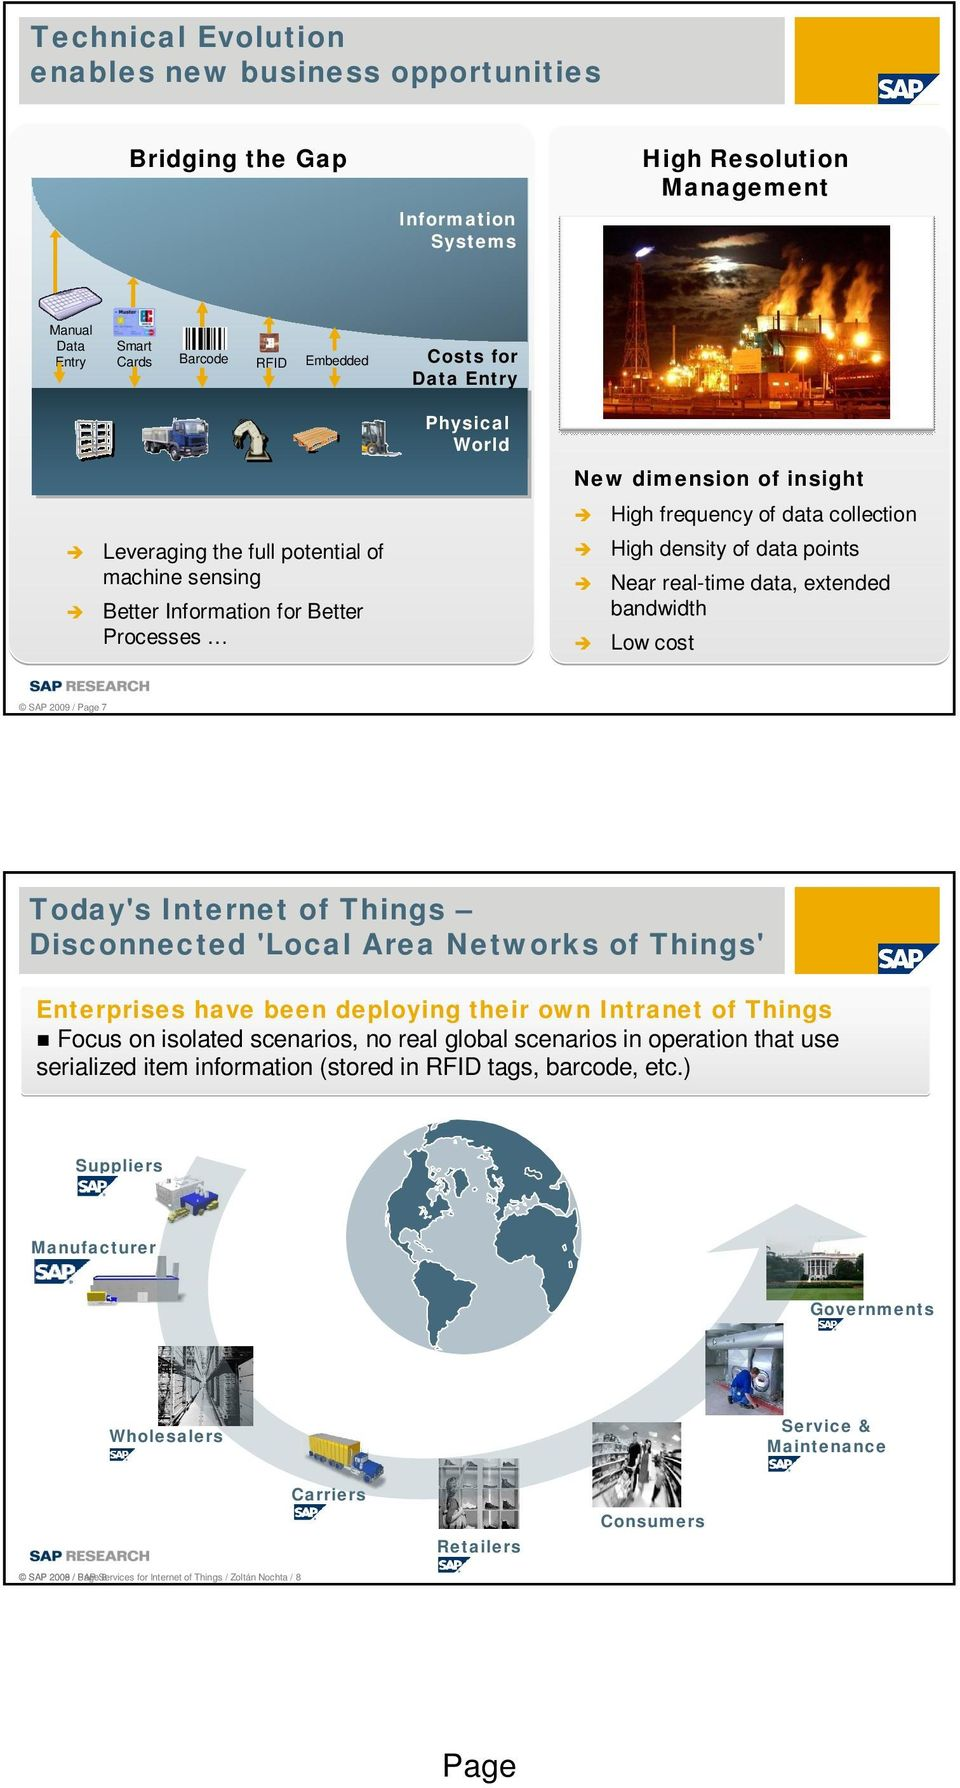 Low cost SAP 2009 / 7 Today's Internet of Things Disconnected 'Local Area Networks of Things' Enterprises have been deploying their own Intranet of Things Focus on isolated scenarios, no real global